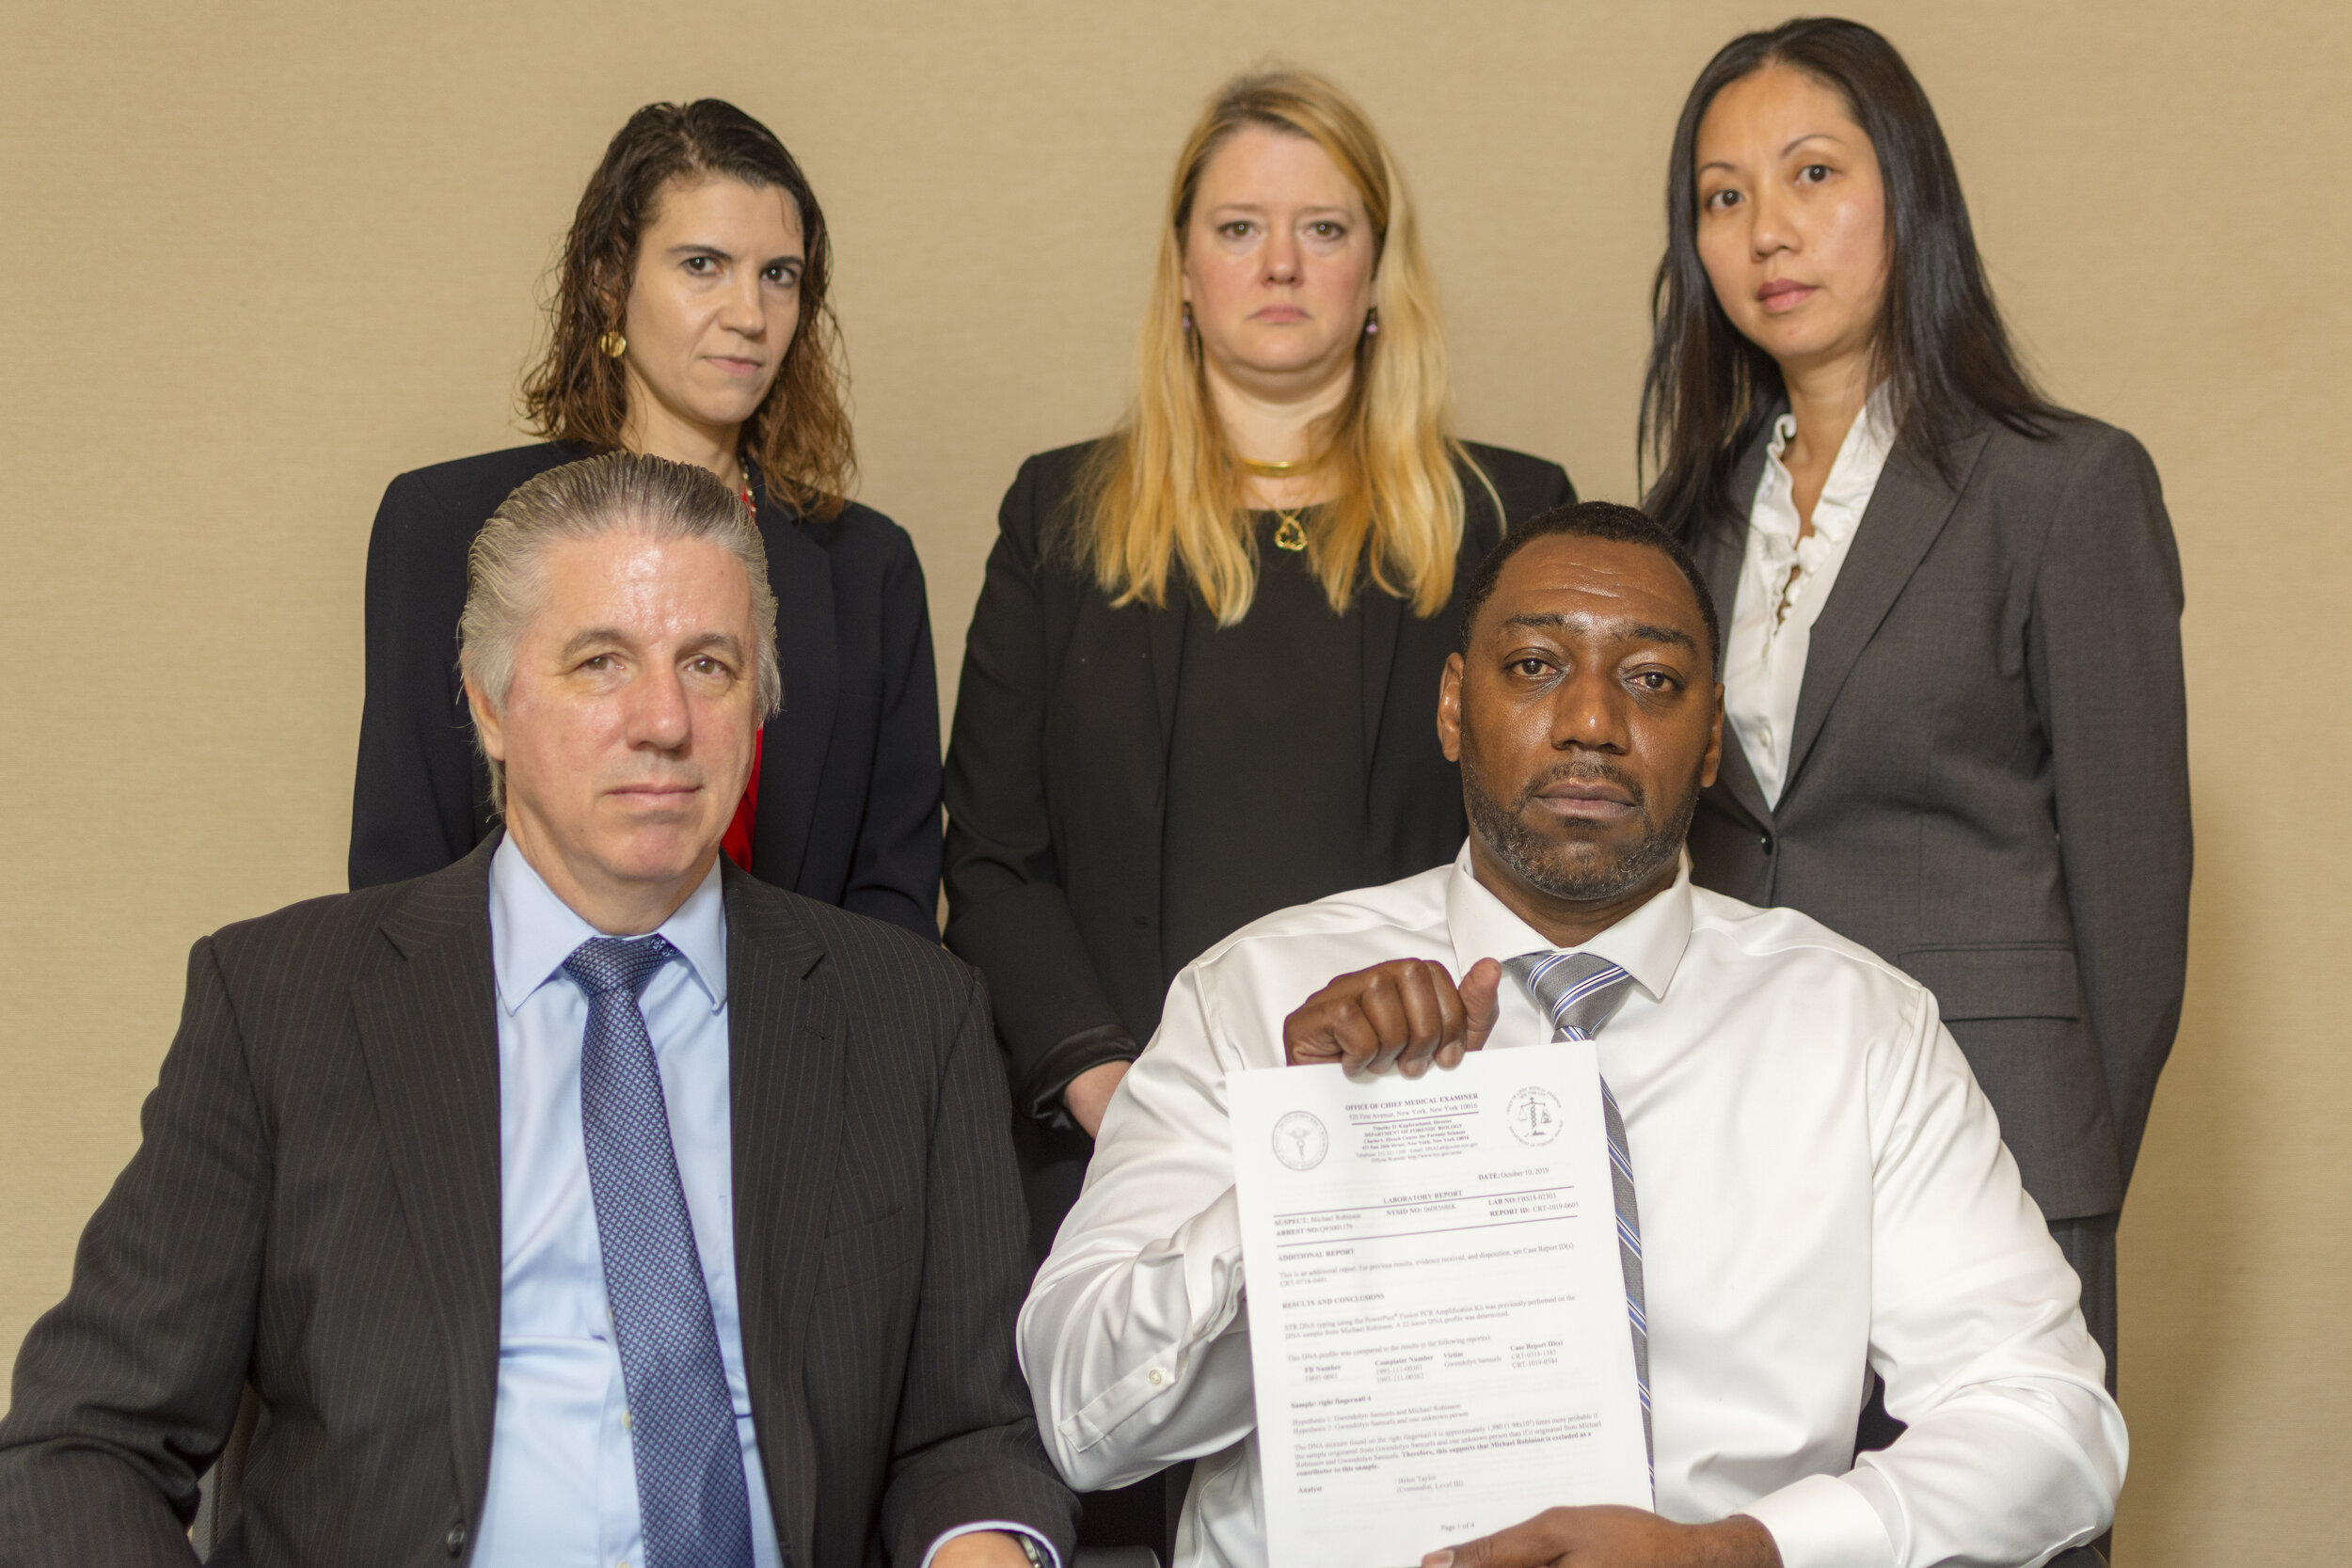 Front row: Legal Aid Criminal Appeals Bureau attorney Harold Ferguson (left) and Michael Robinson. Back row (left to right): Legal Aid DNA Unit attorneys Terri Rosenblatt, Jessica Goldthwaite and Jenny Cheung. Photo courtesy of Legal Aid